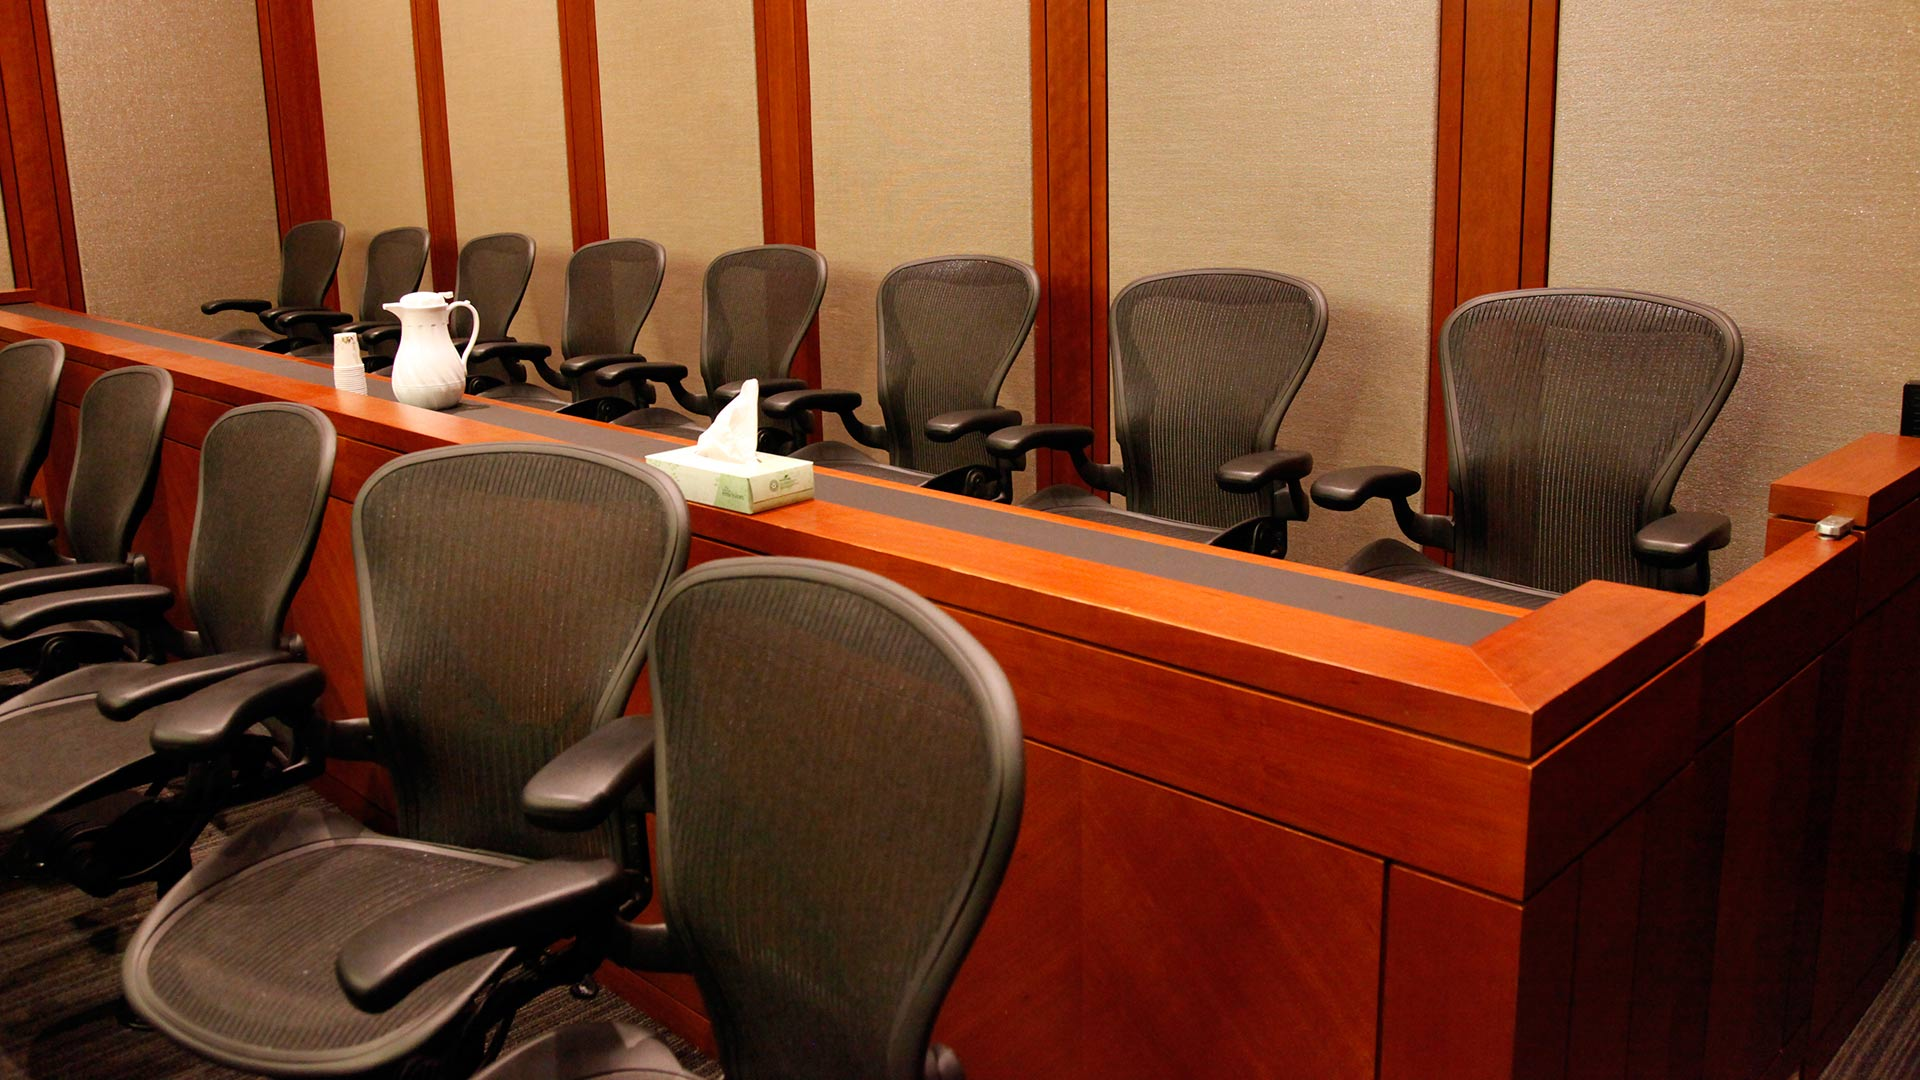 Pima County Courts Warns About Missing Jury Duty - AZPM